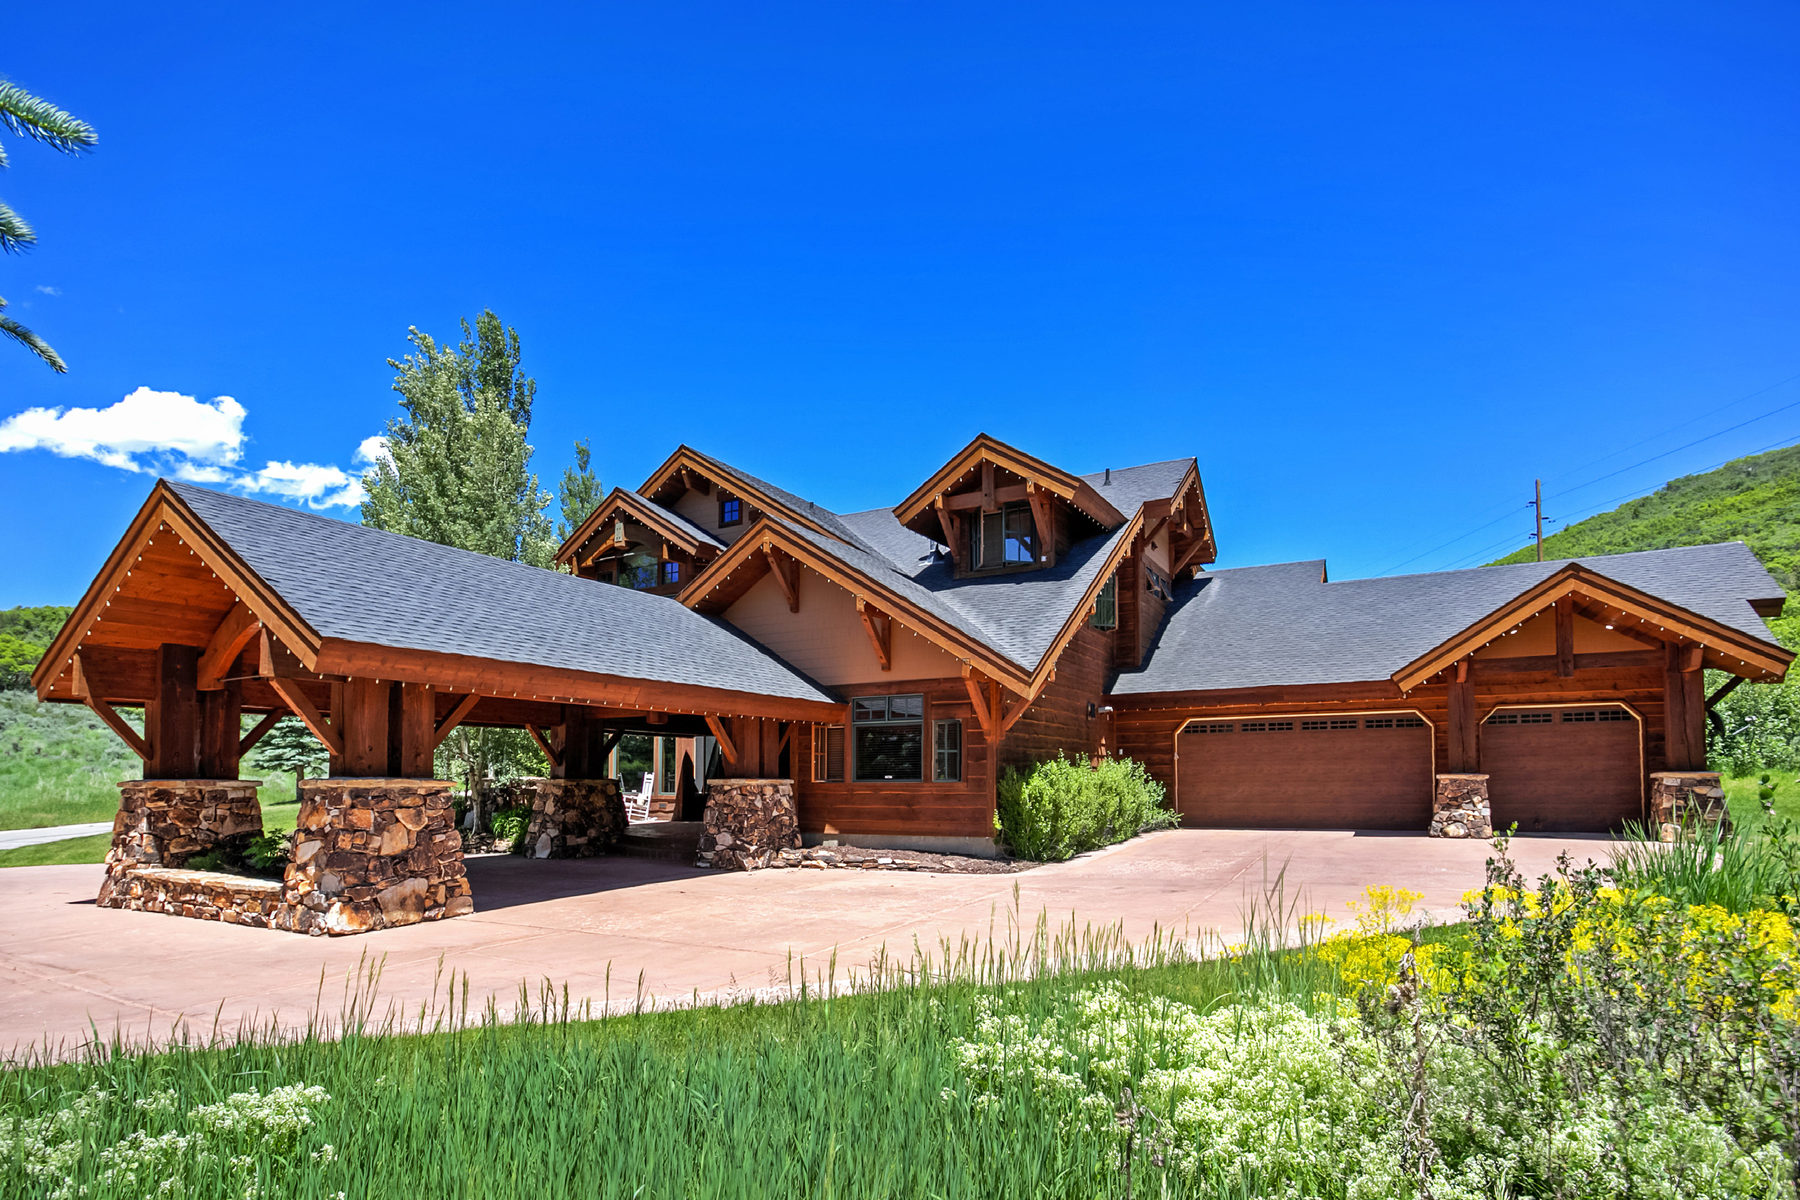 Single Family Home for Sale at Ideal Home in Deer Valley 3700 Solamere Dr Park City, Utah, 84060 United States